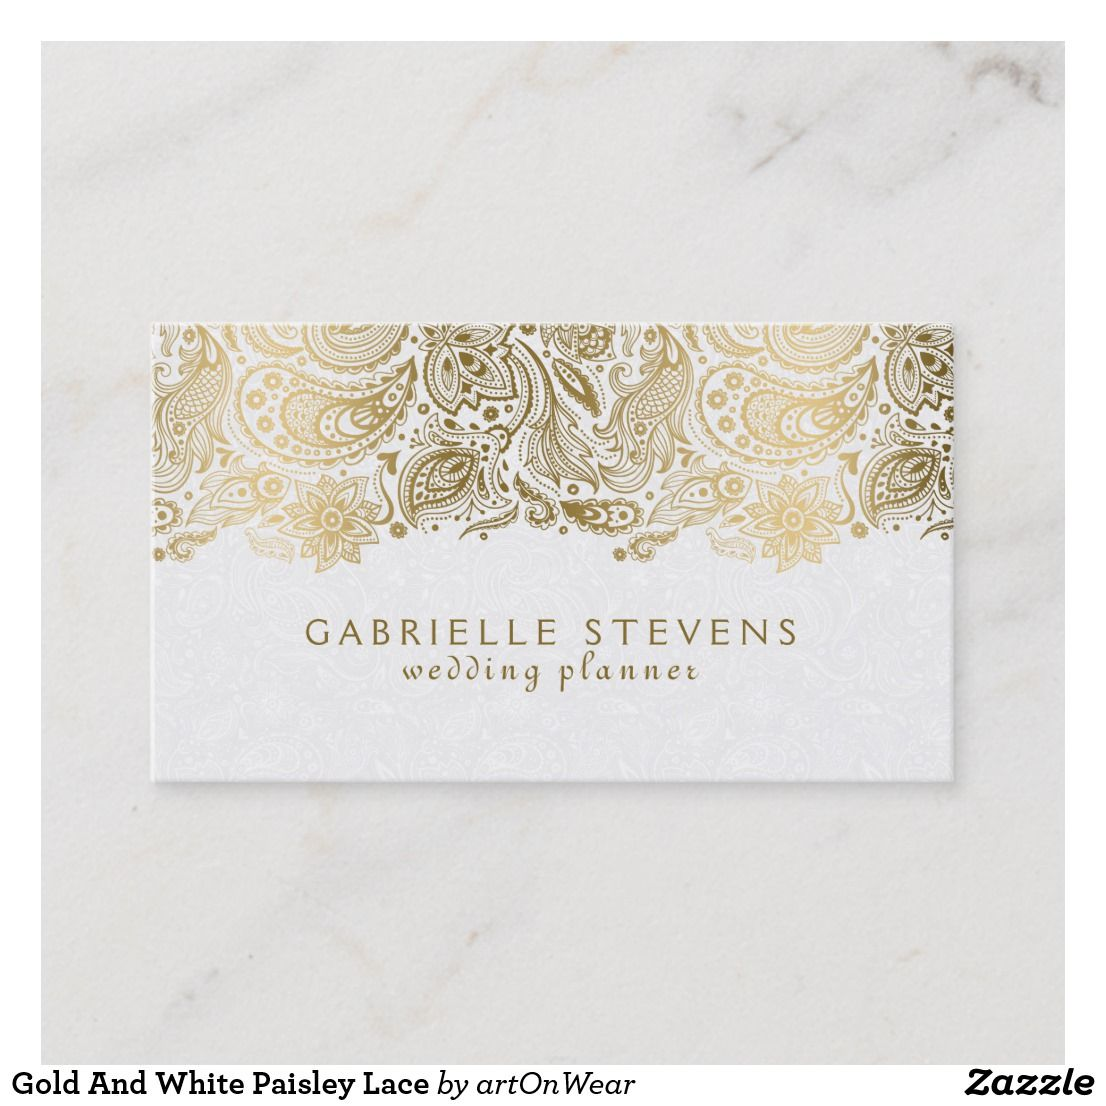 Gold And White Paisley Lace Business Card Zazzle Com Wedding Planner Business Card Wedding Planner Business Event Planner Business Card